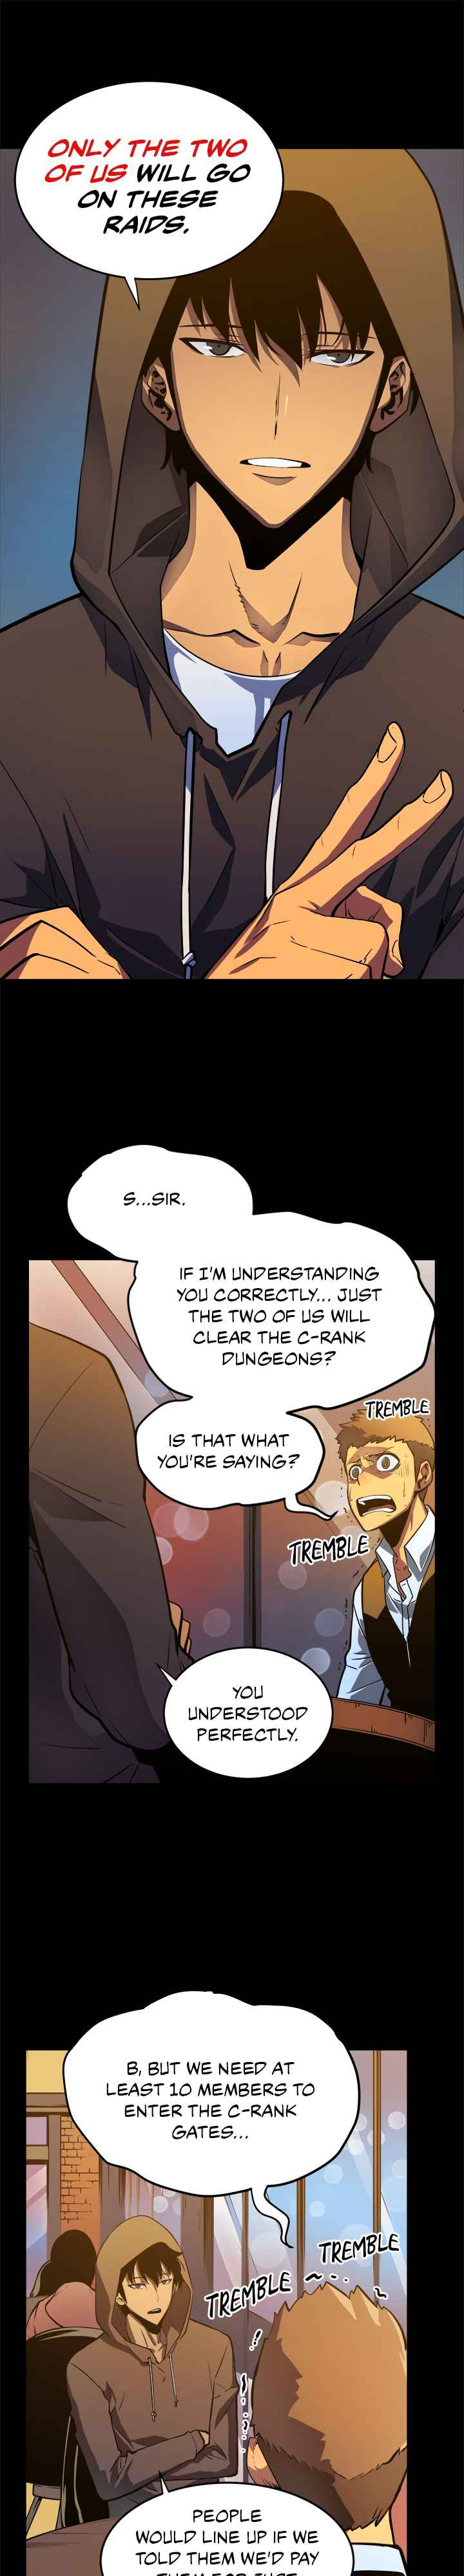 Solo Leveling Chapter 26 Page 7